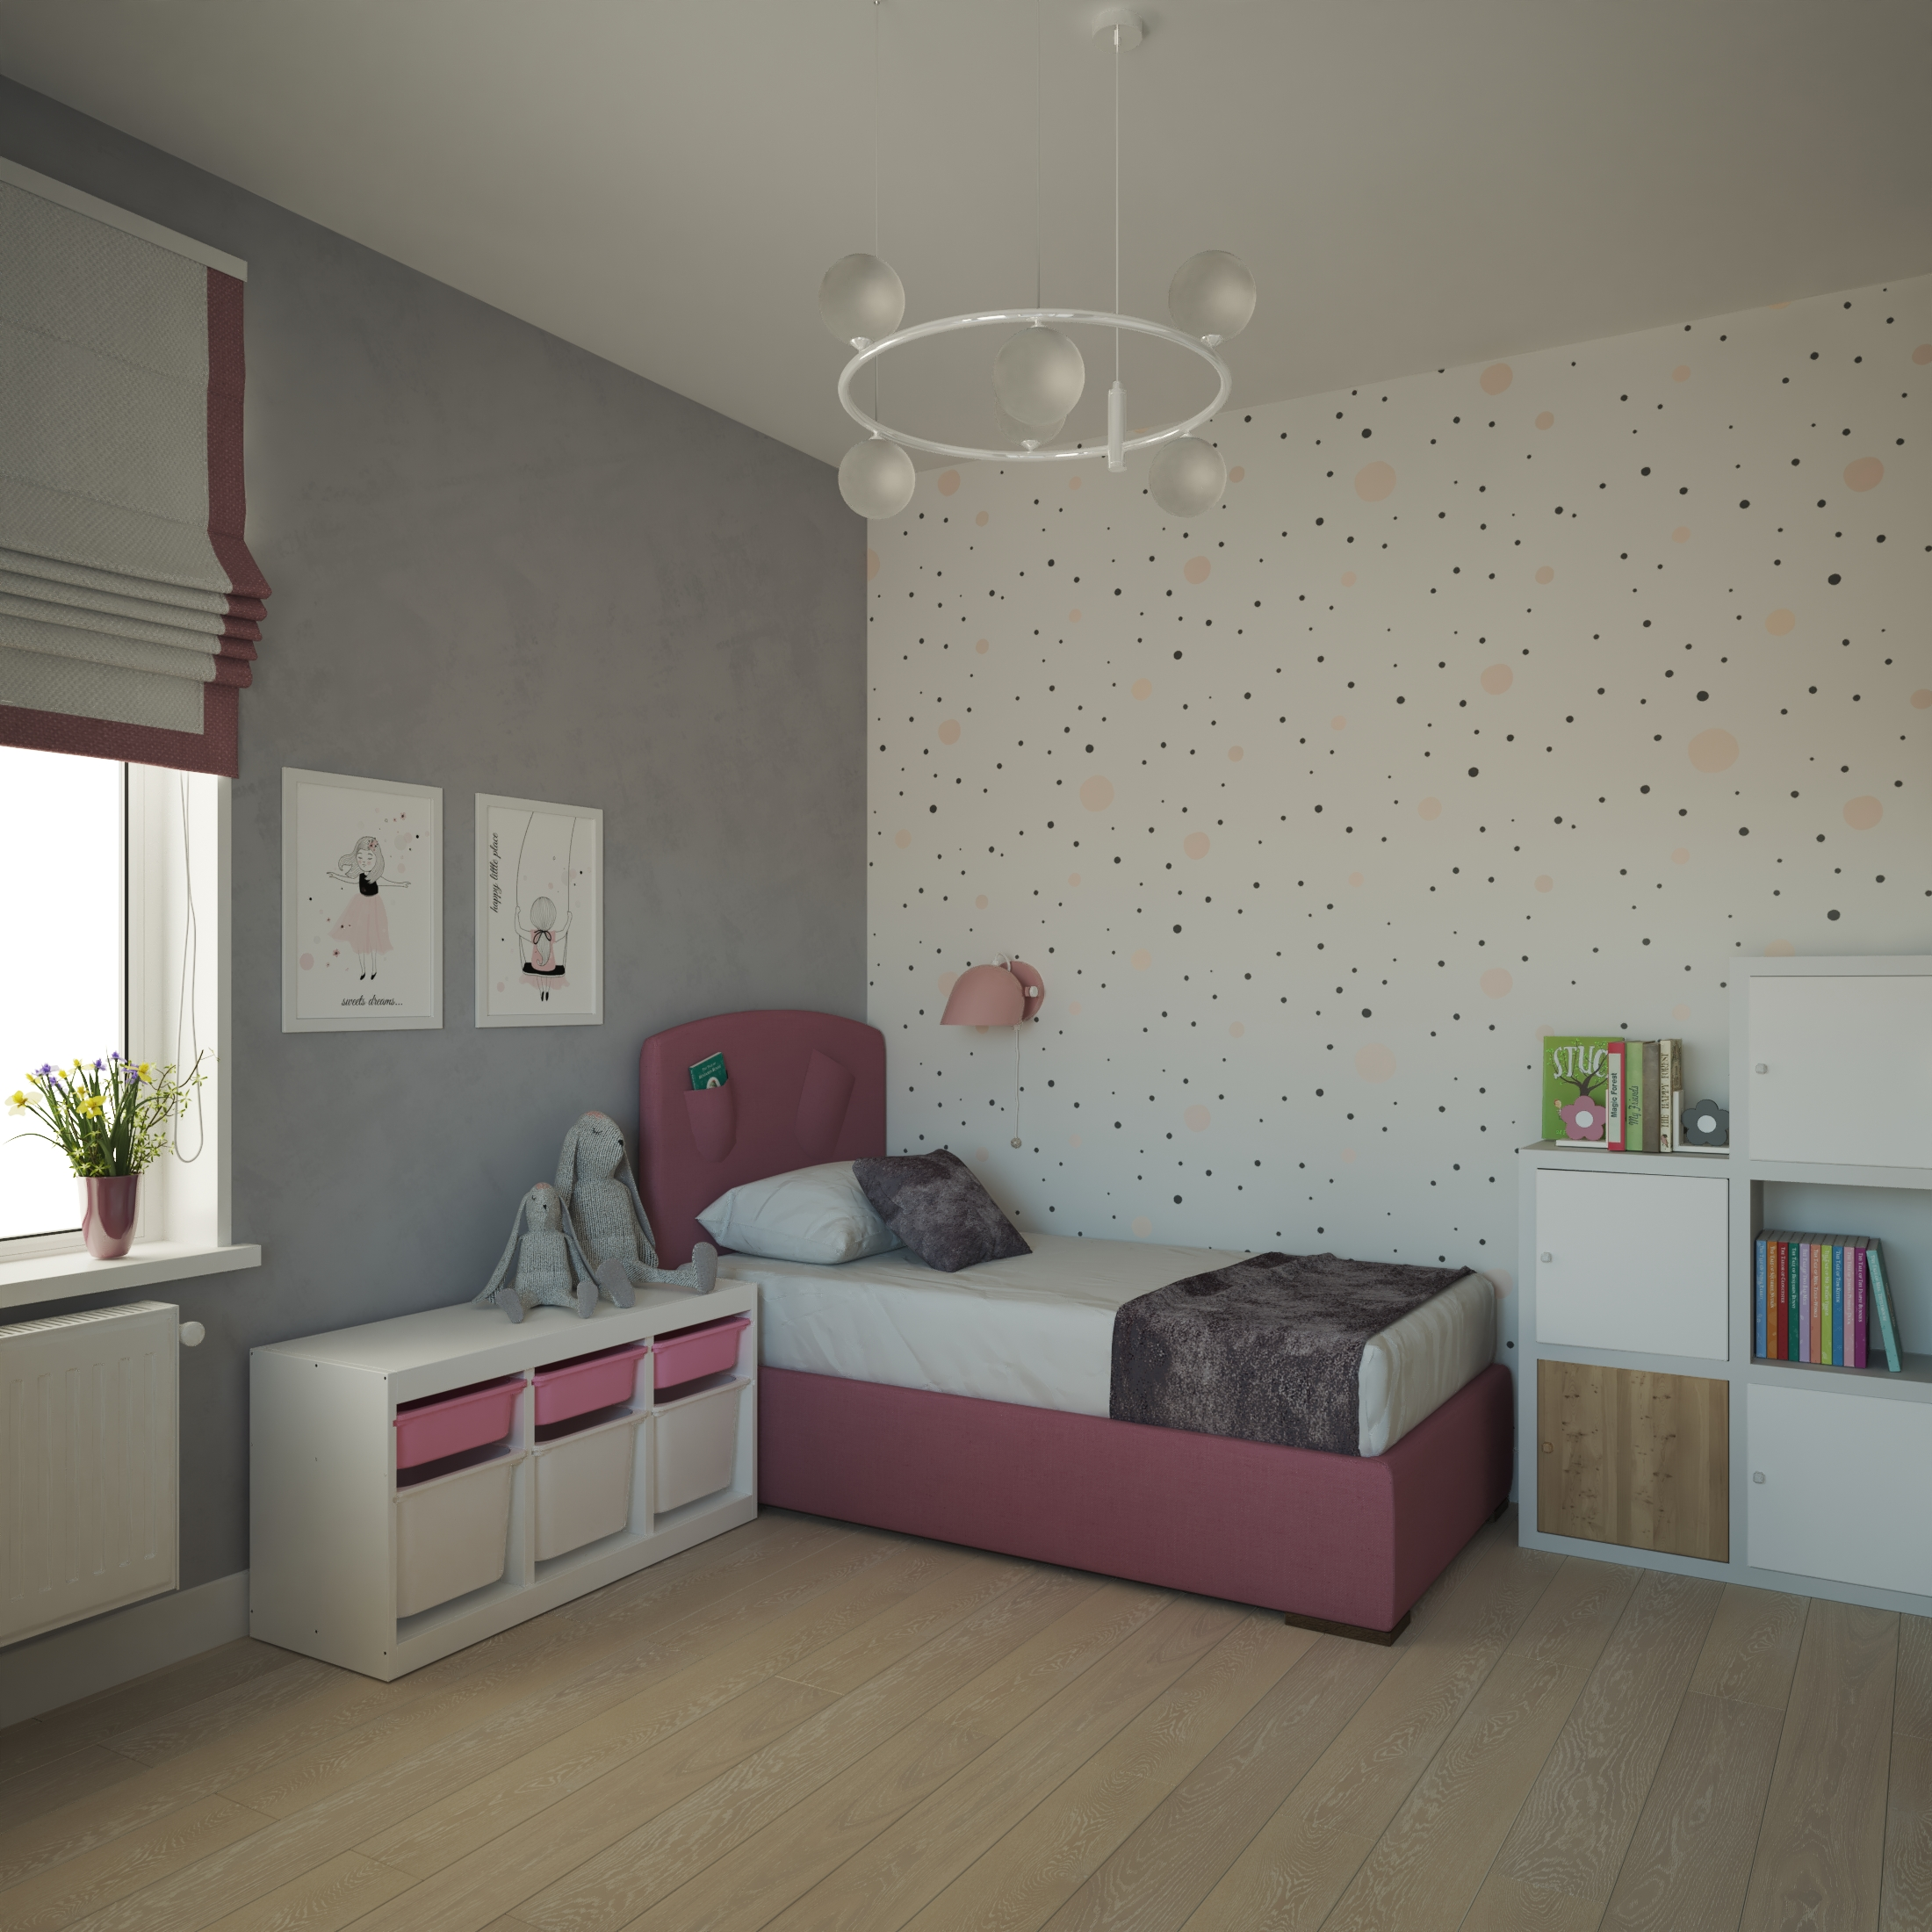 Interior visualization for a kid